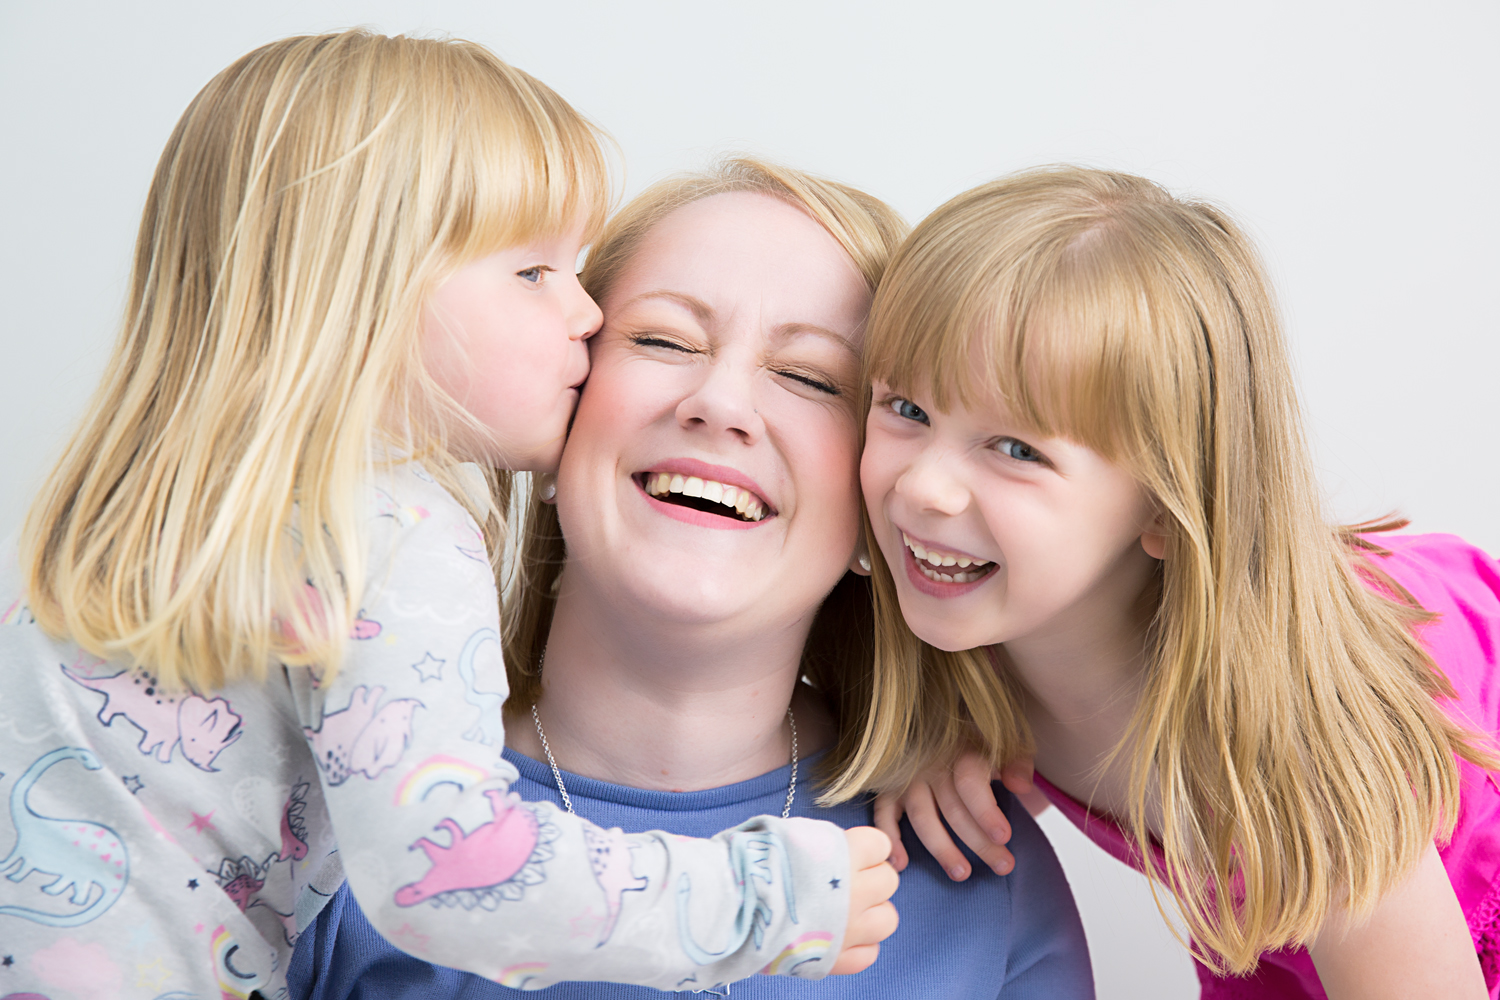 Capture your fun family moments with a mini photoshoot and support two fantastic causes at the same time for double the joy!